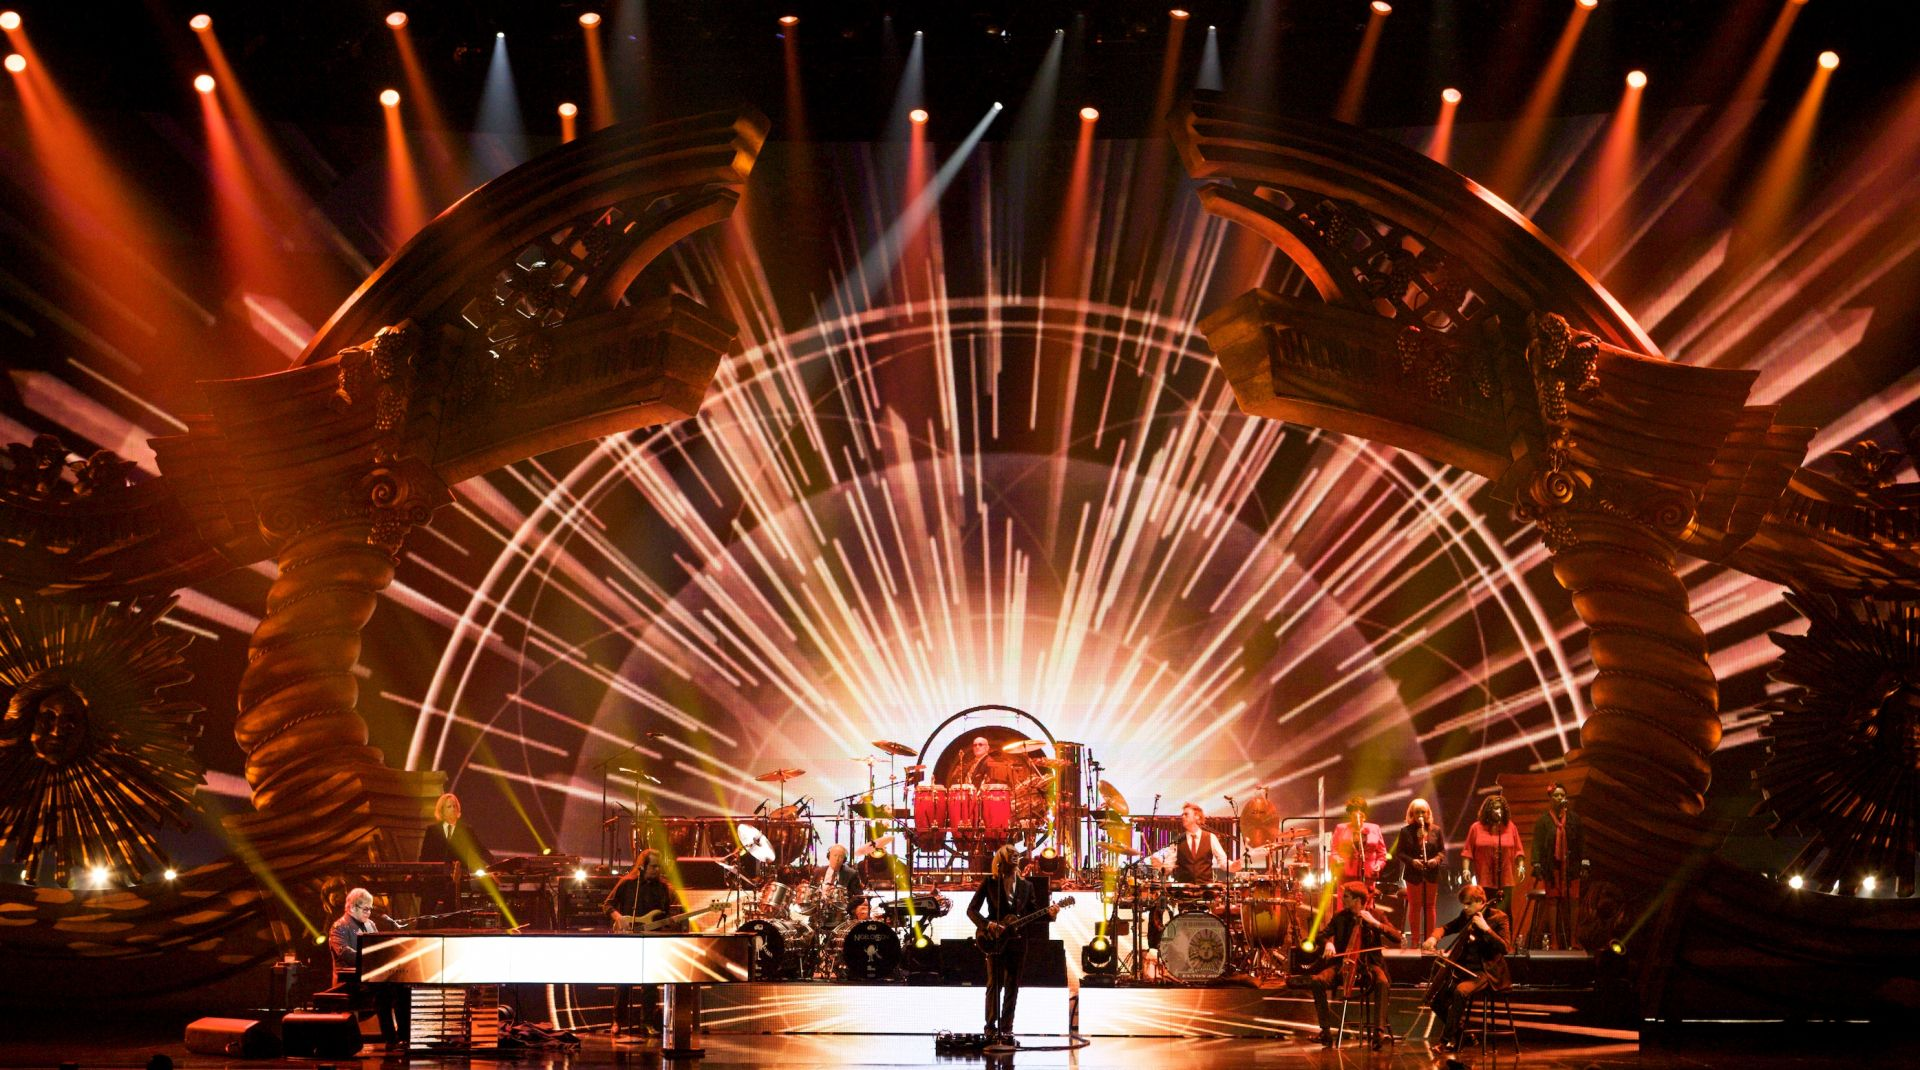 Elton and the band performing 'Don't Let The Sun Go Down On Me' during the Million Dollar Piano at Caesars Palace, Las Vegas in May 2012. (Photo: Joseph Guay)